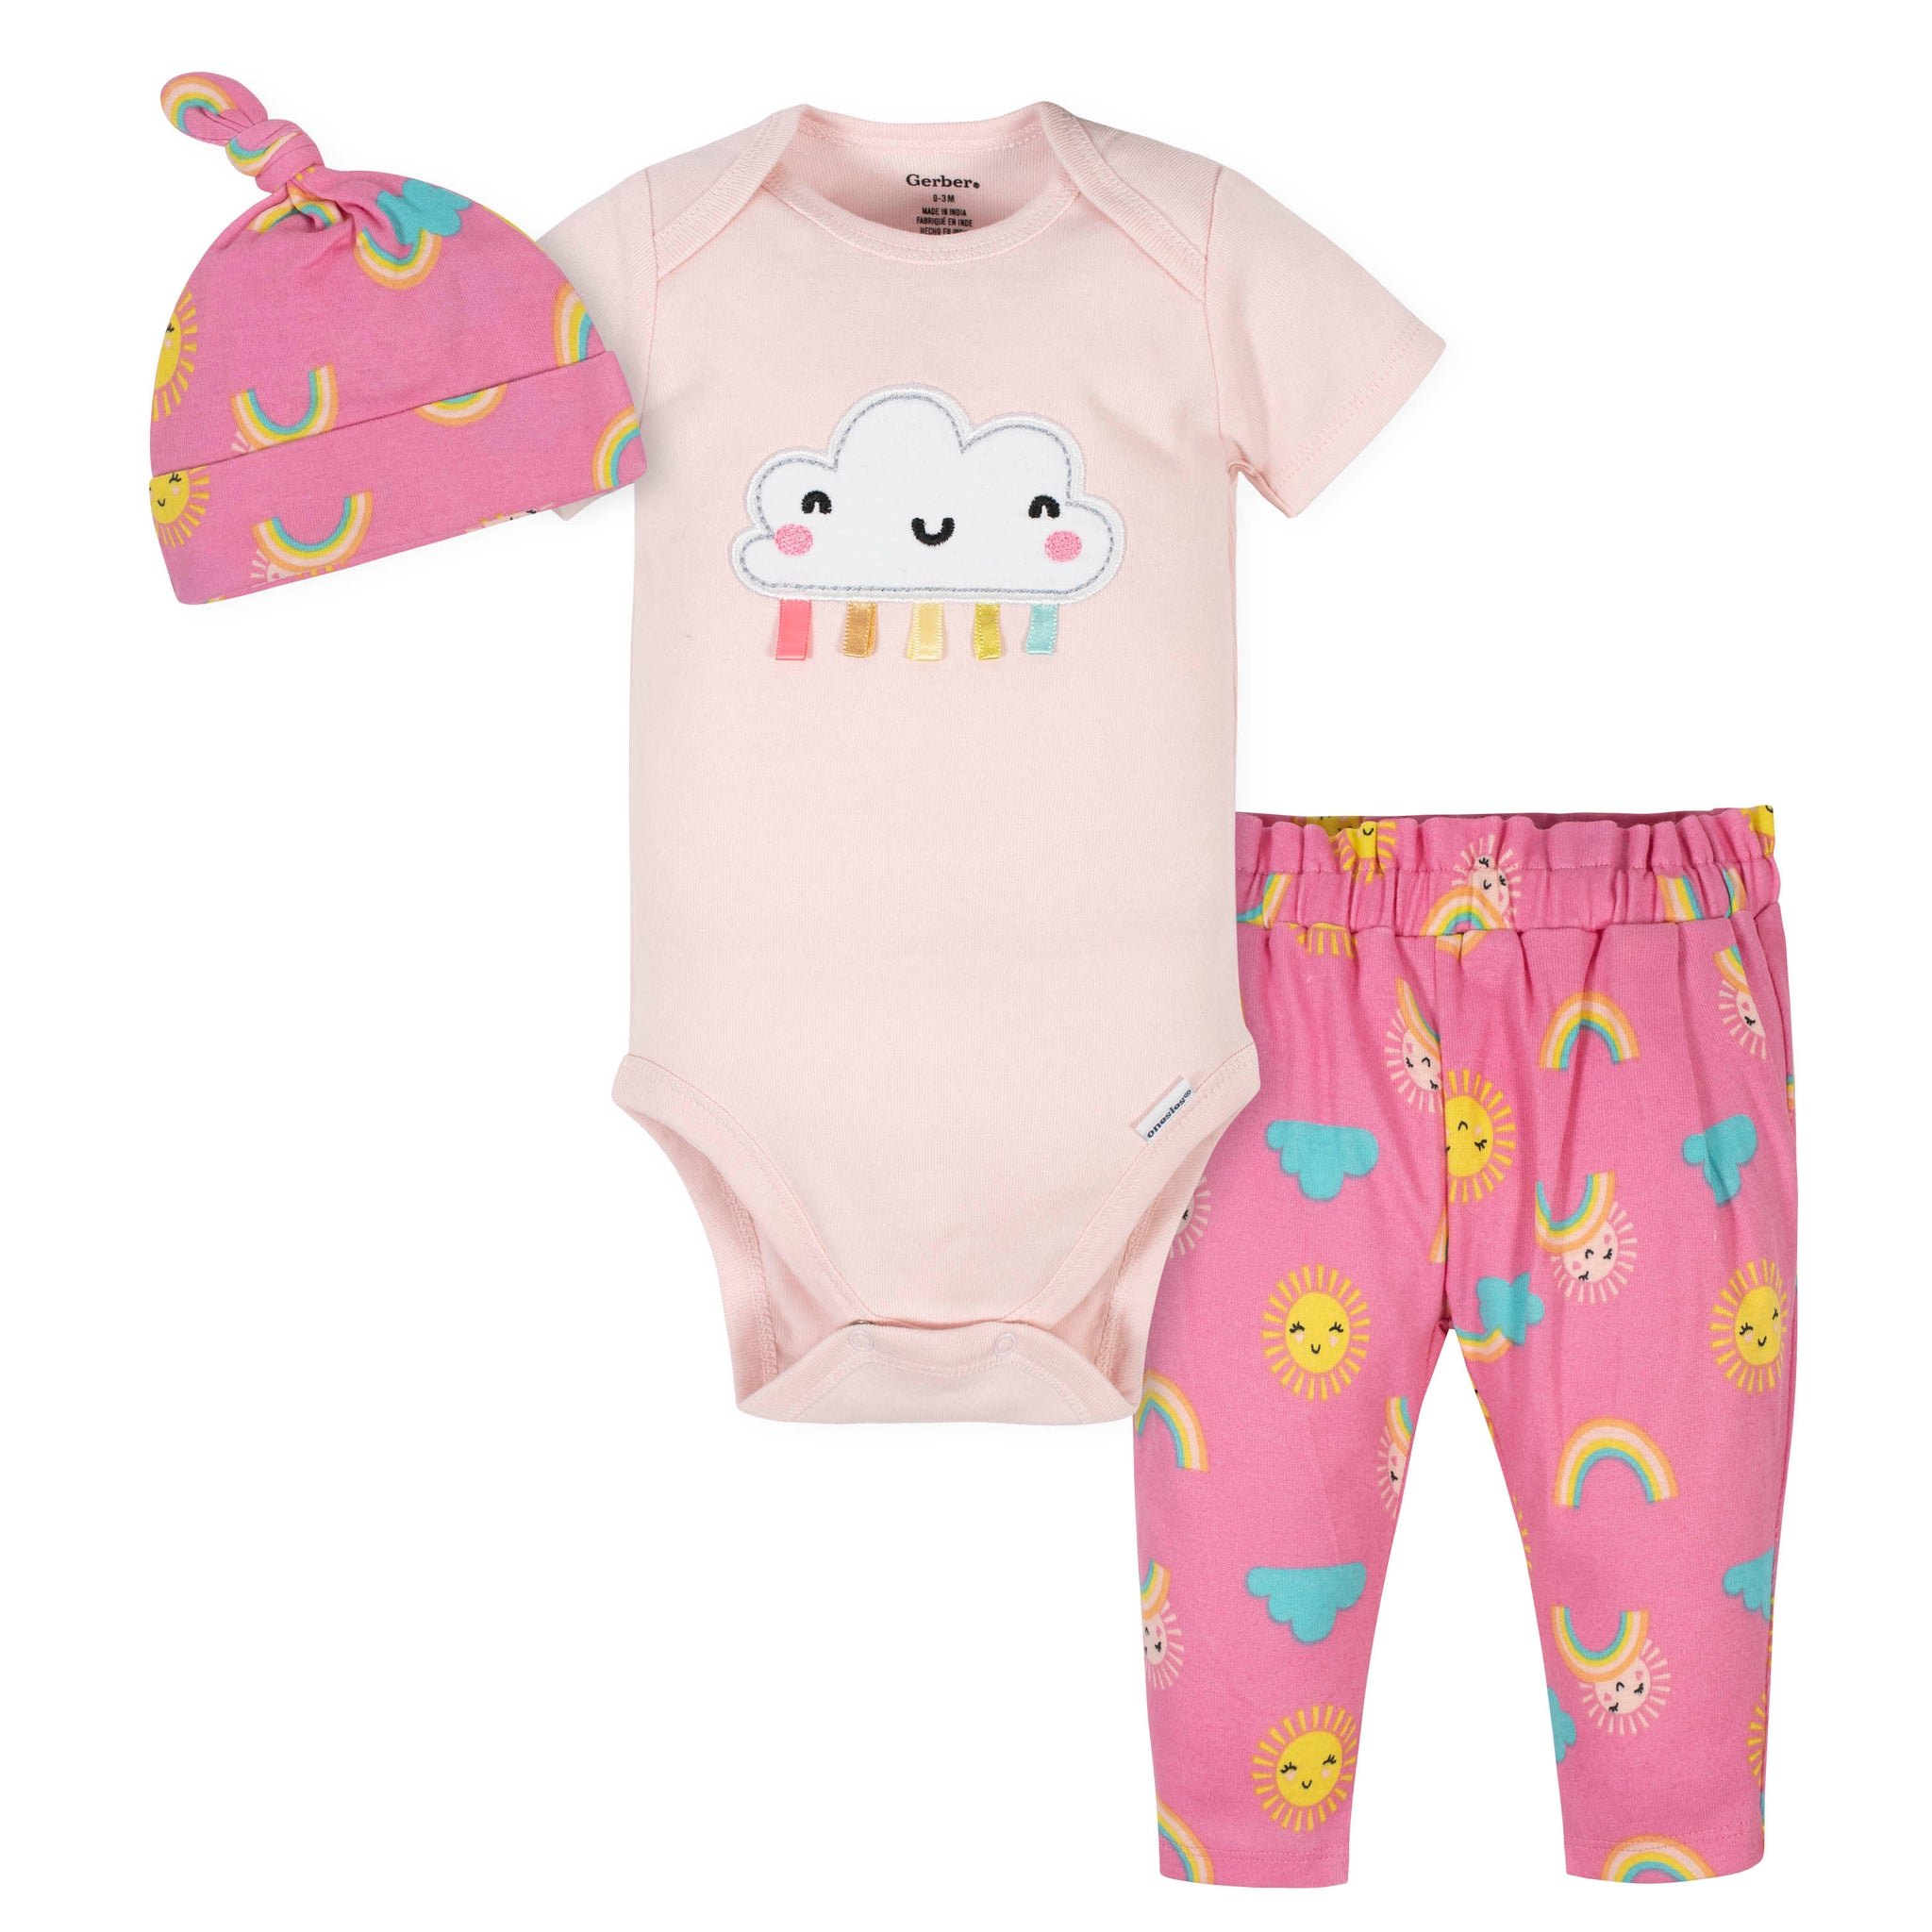 3-Piece Baby Girls Rainbows Bodysuit, Pant, and Cap Set-Gerber Childrenswear Wholesale